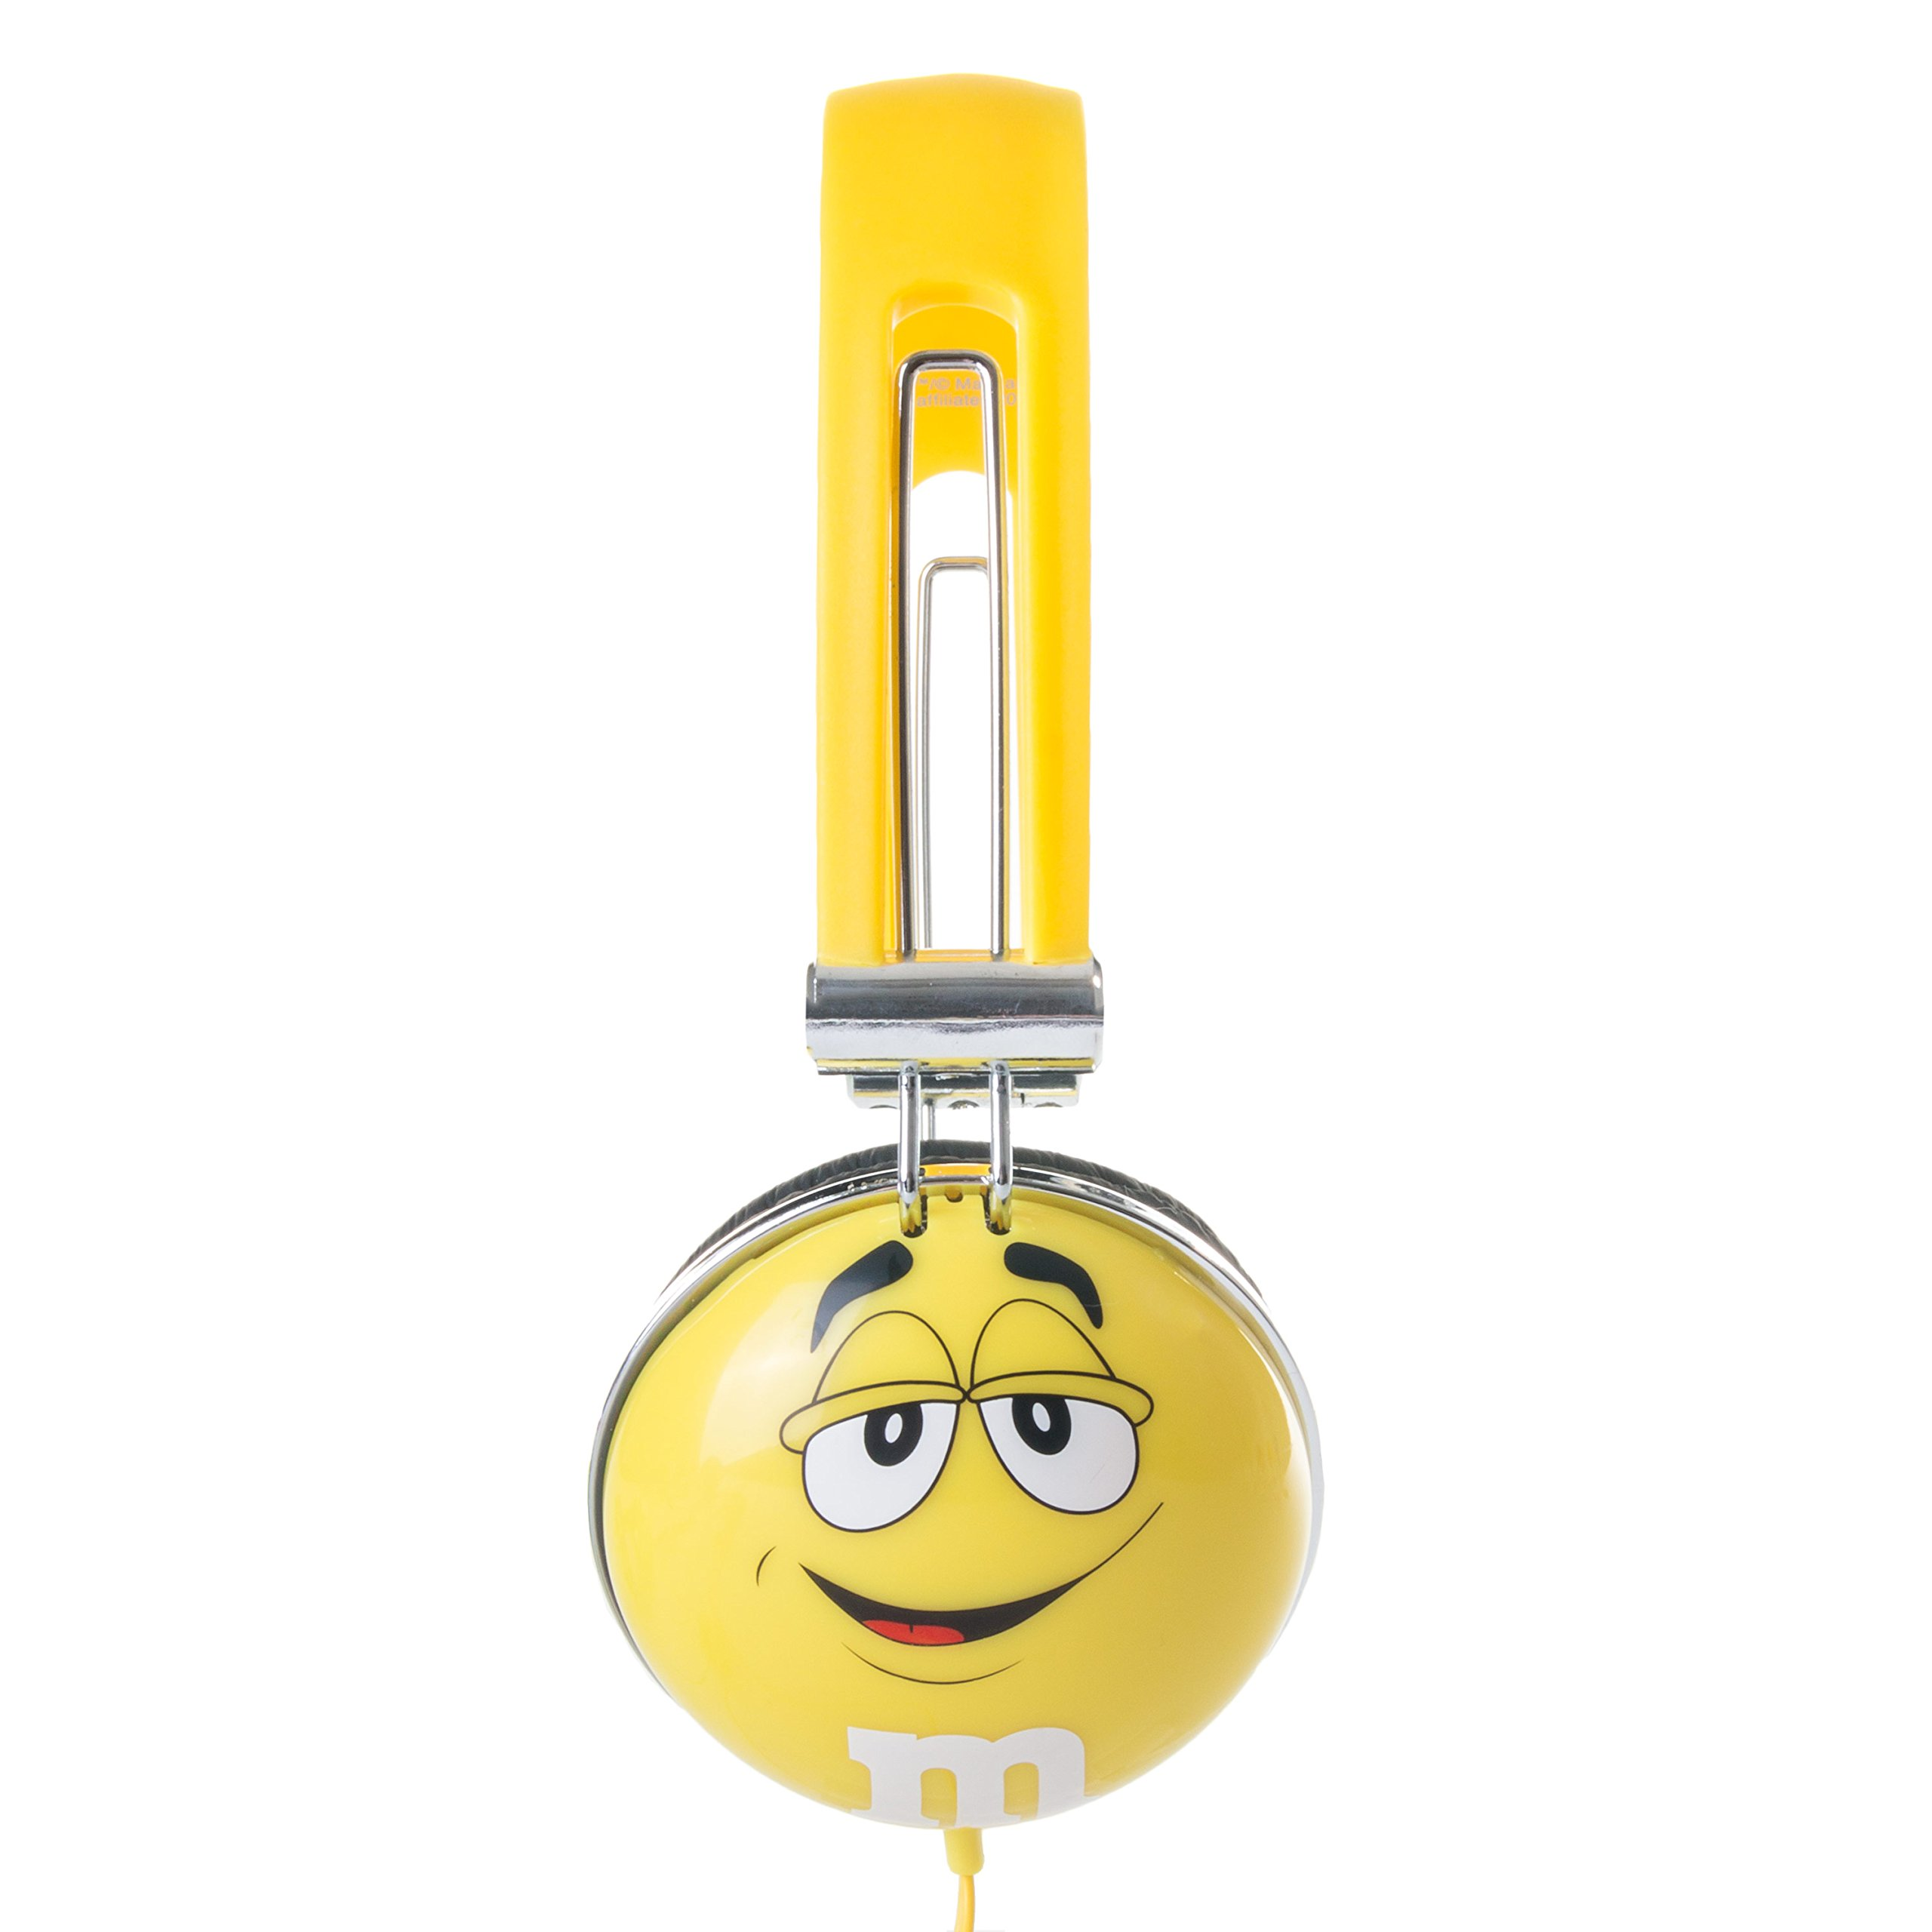 iHip M&M'S Brand Comfort Fit Headphones for iPhone, iPad, iPod, Samsung or Any Smartphone, MP3 Player or Tablet by iHip